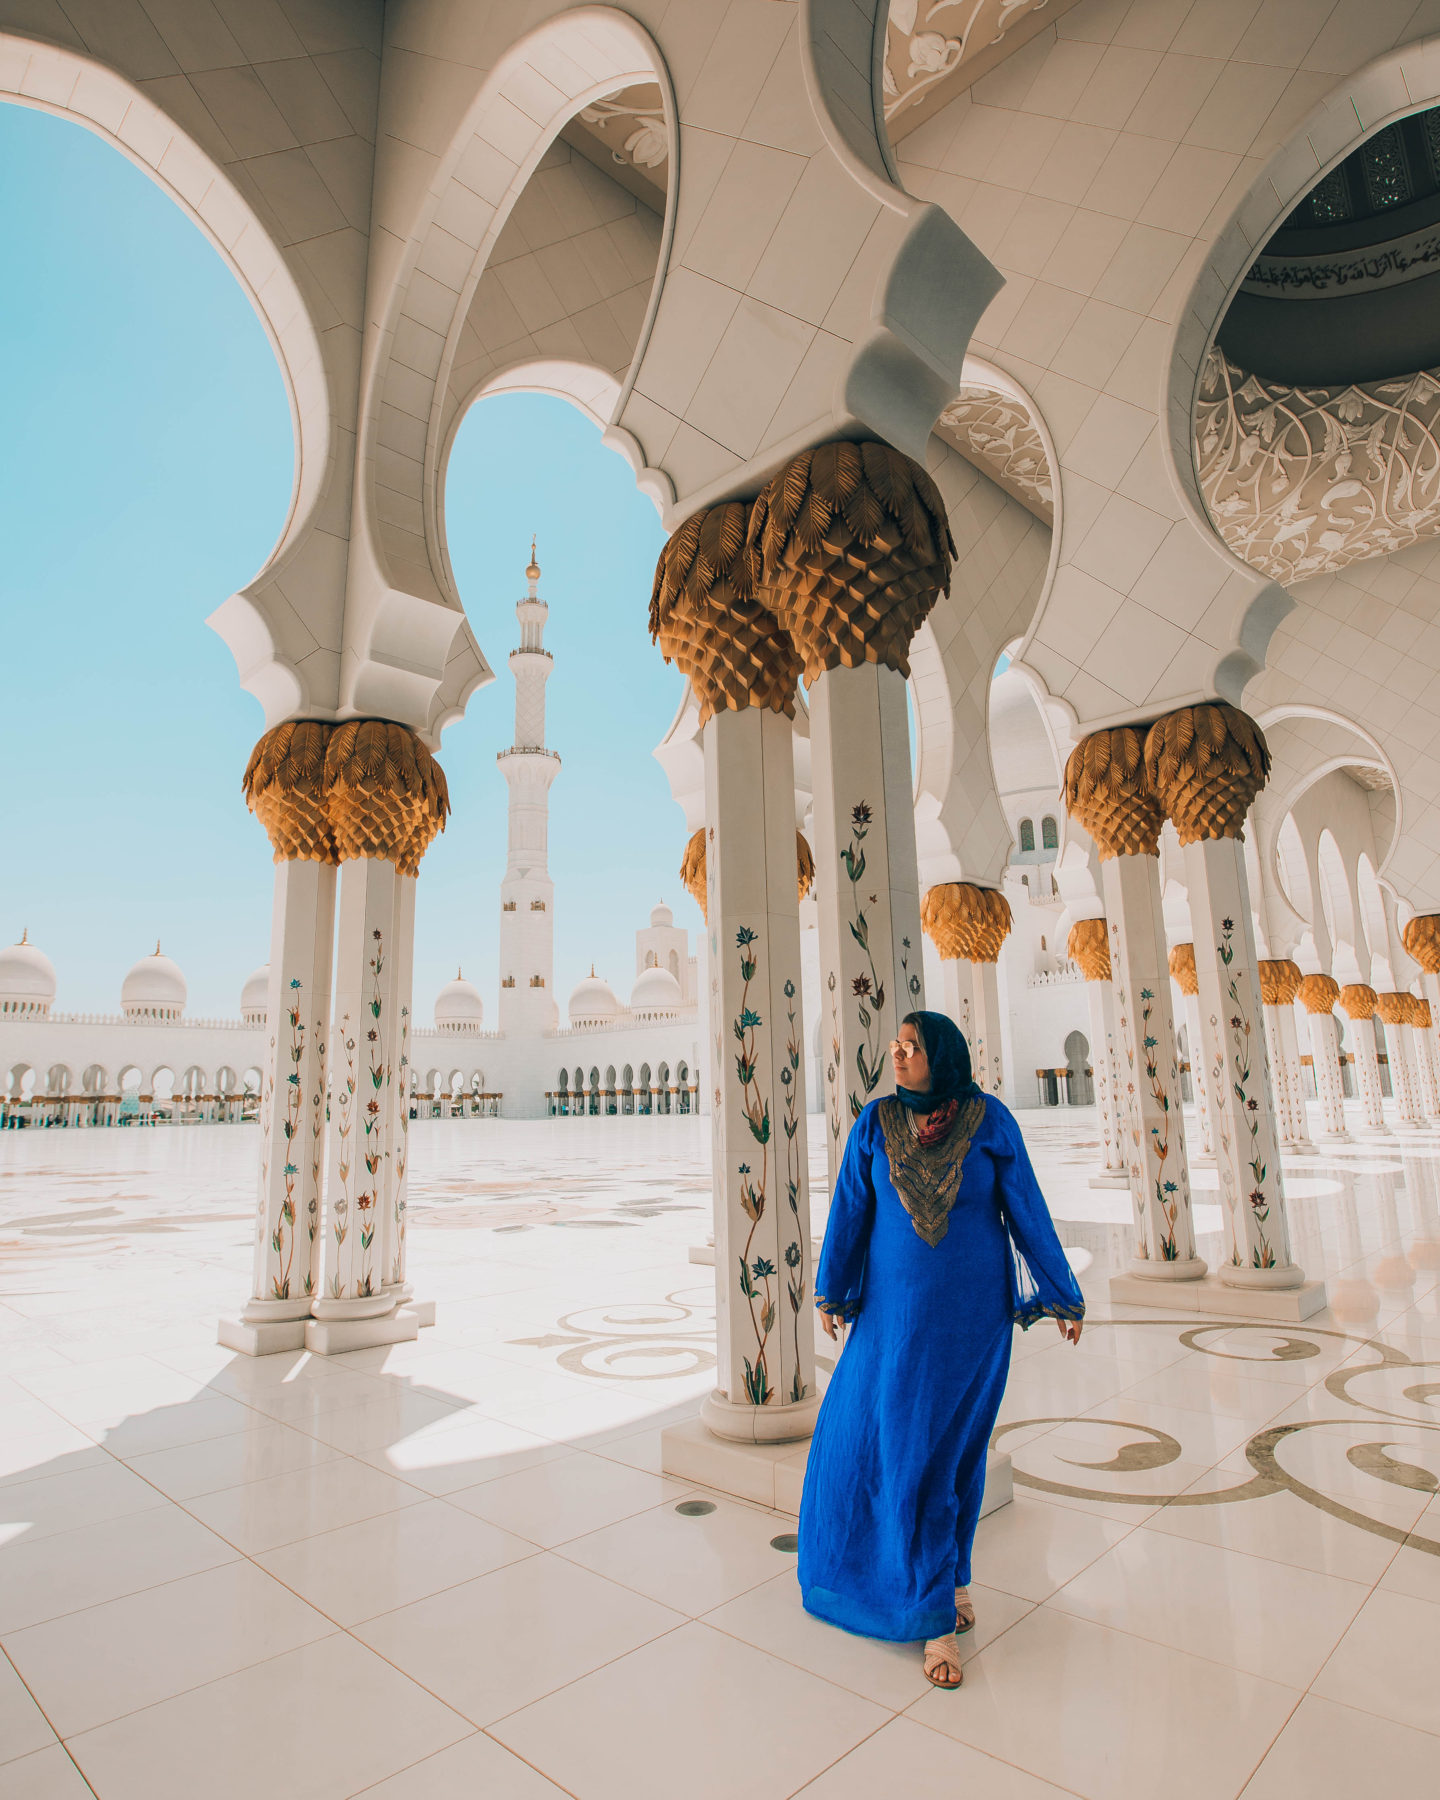 Sheikh Zayed Grand Mosque - the perfect day trip from Dubai